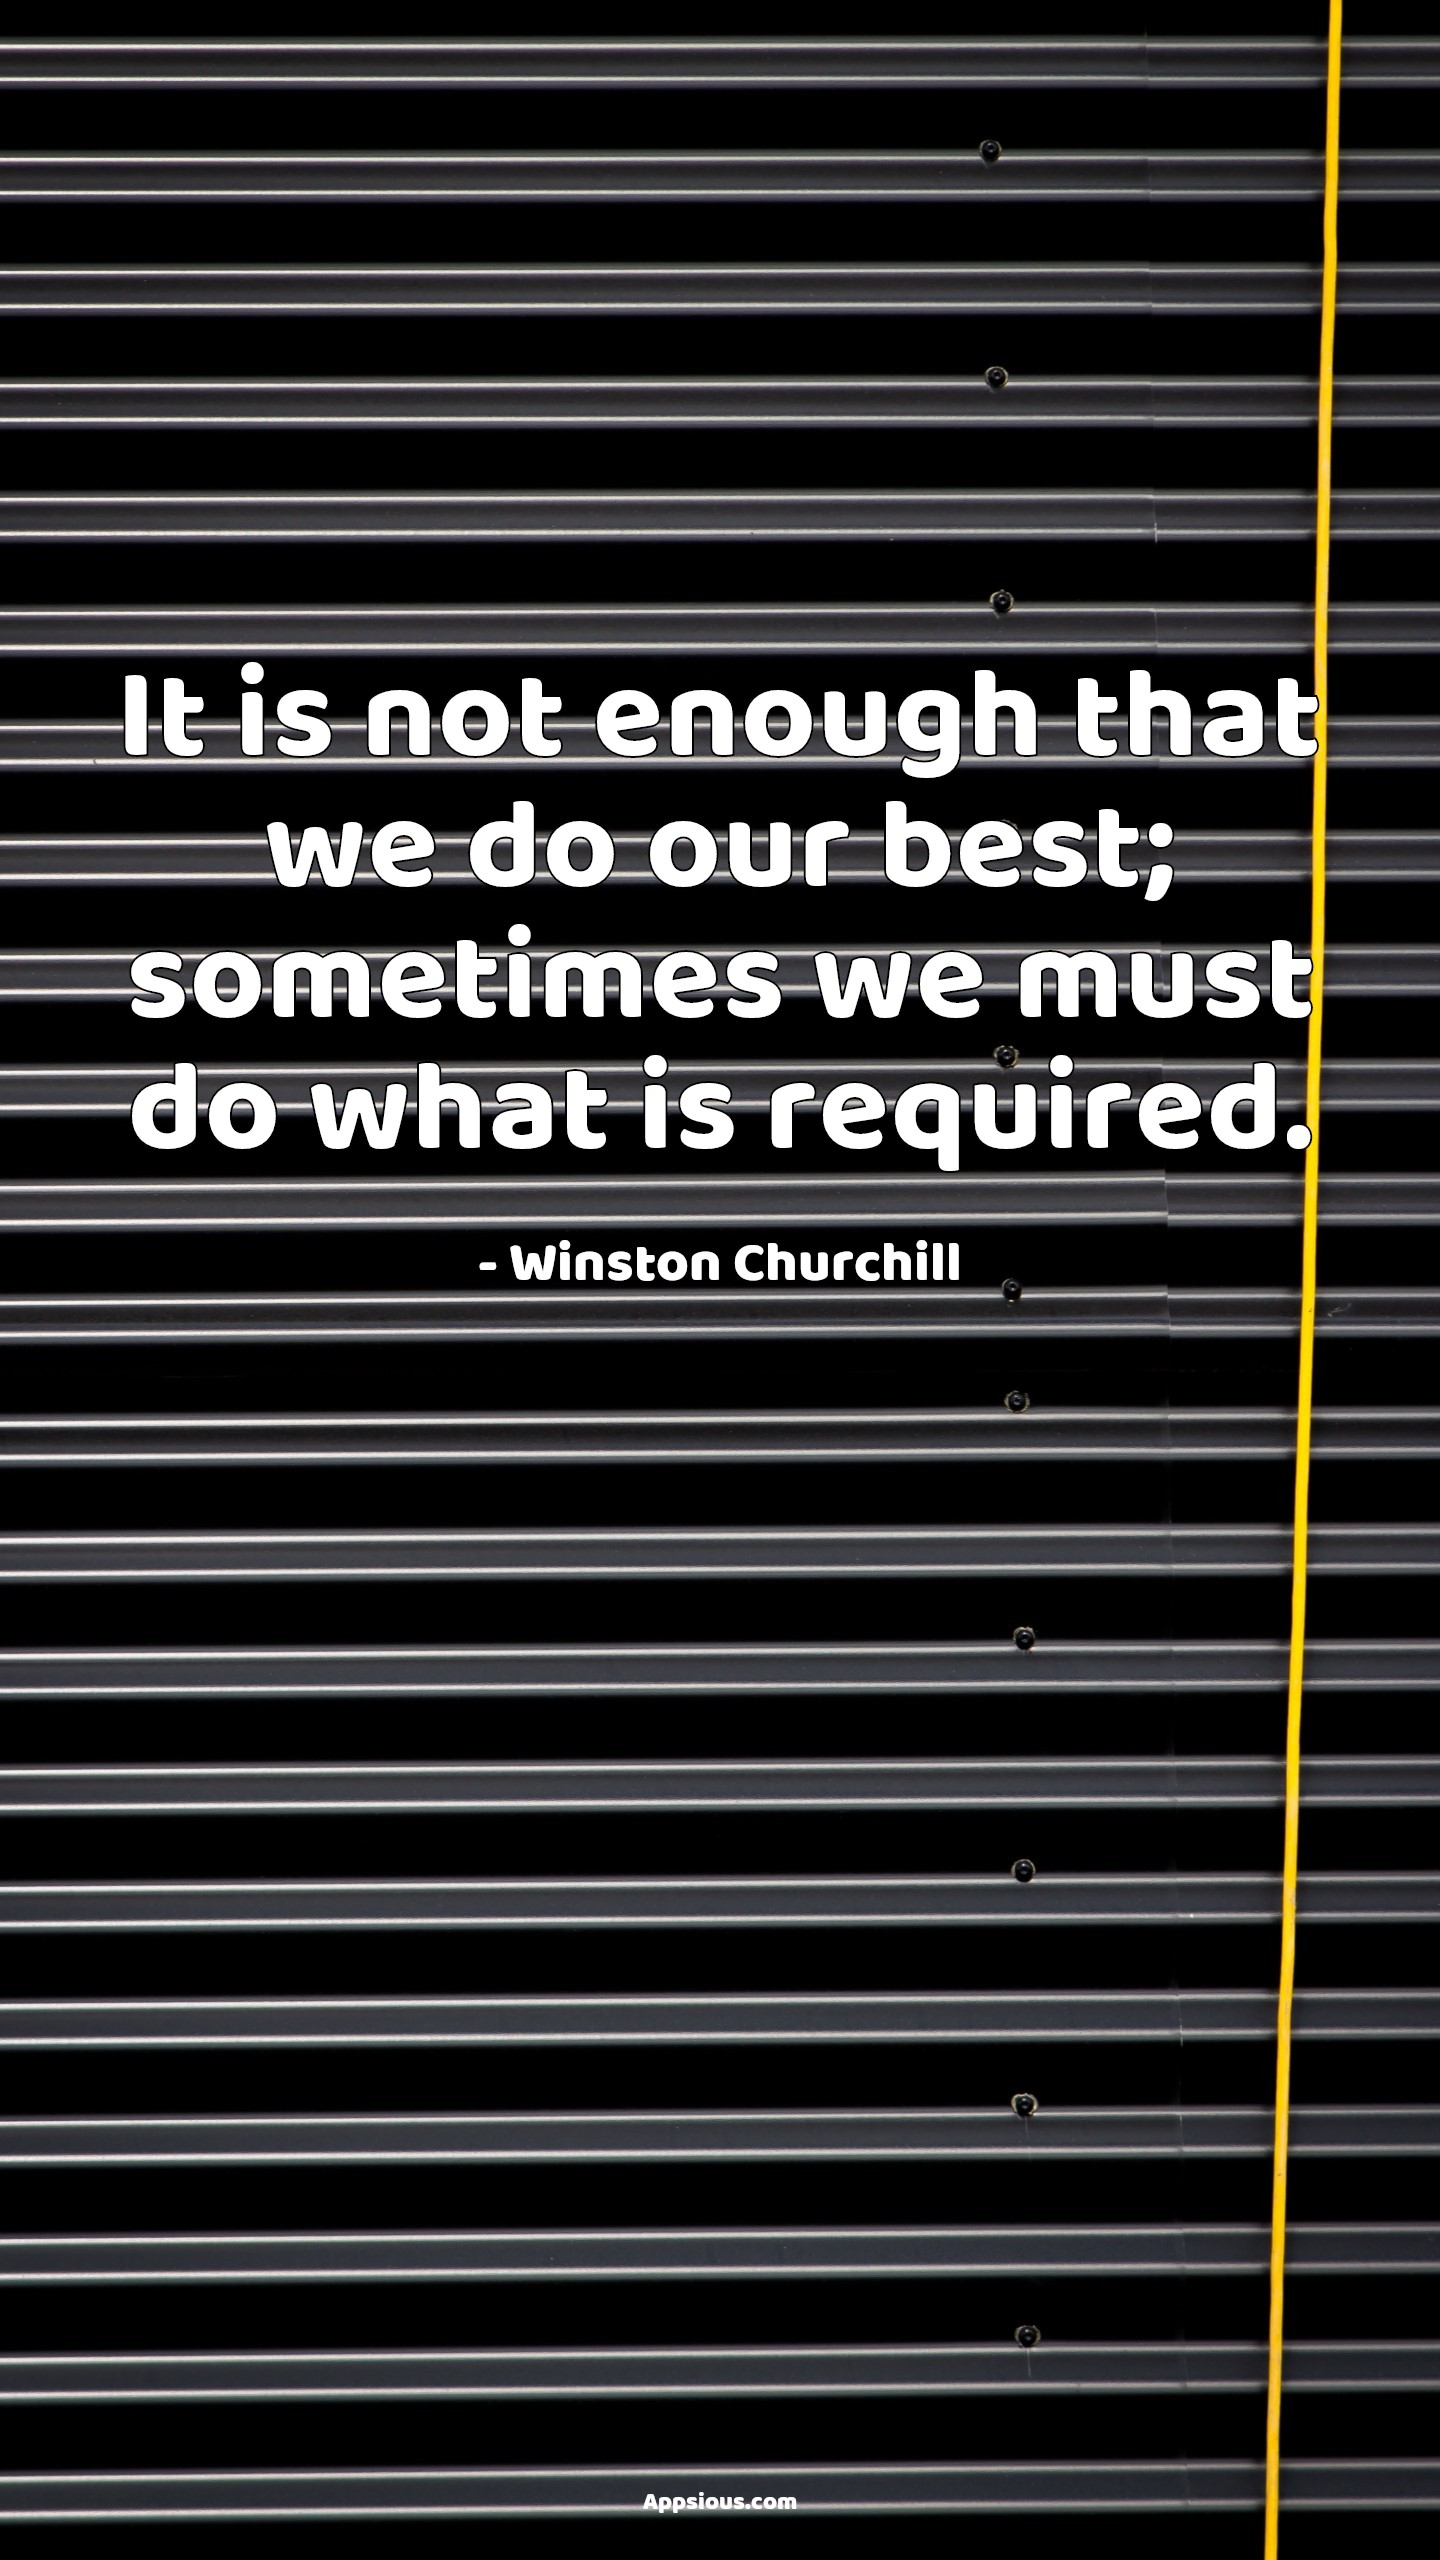 It is not enough that we do our best; sometimes we must do what is required.